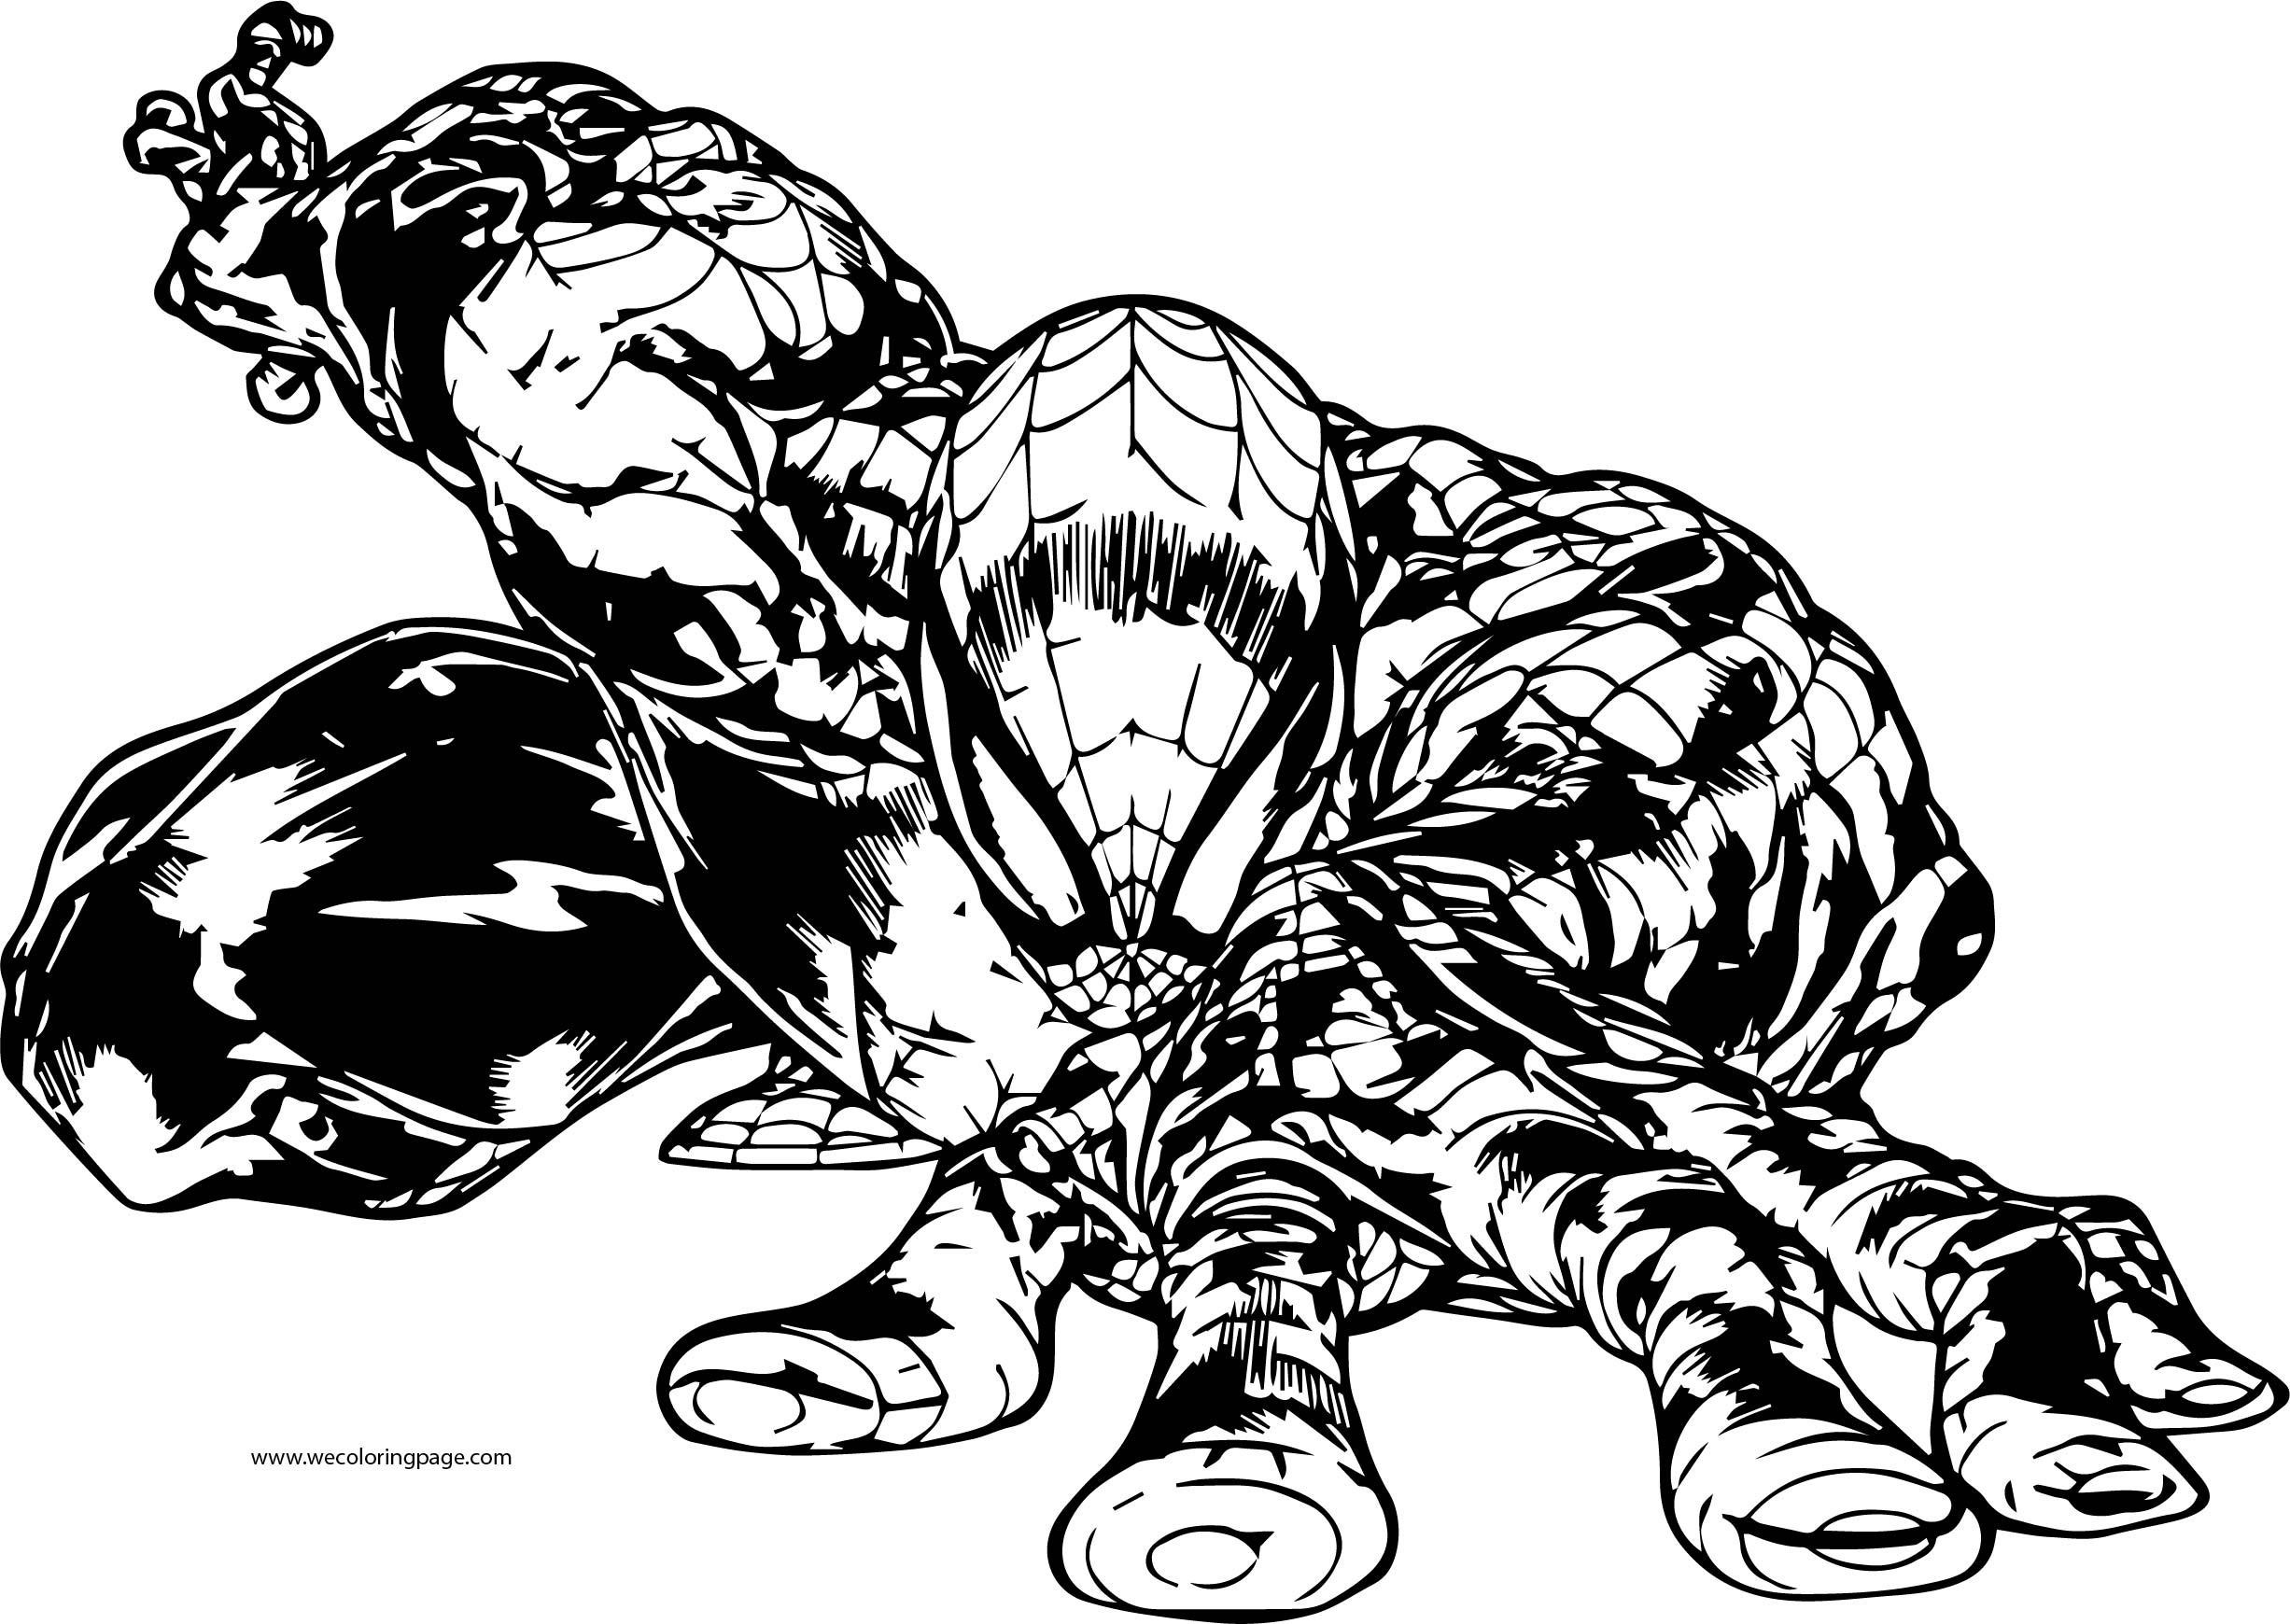 Spider Man Coloring Page WeColoringPage 183